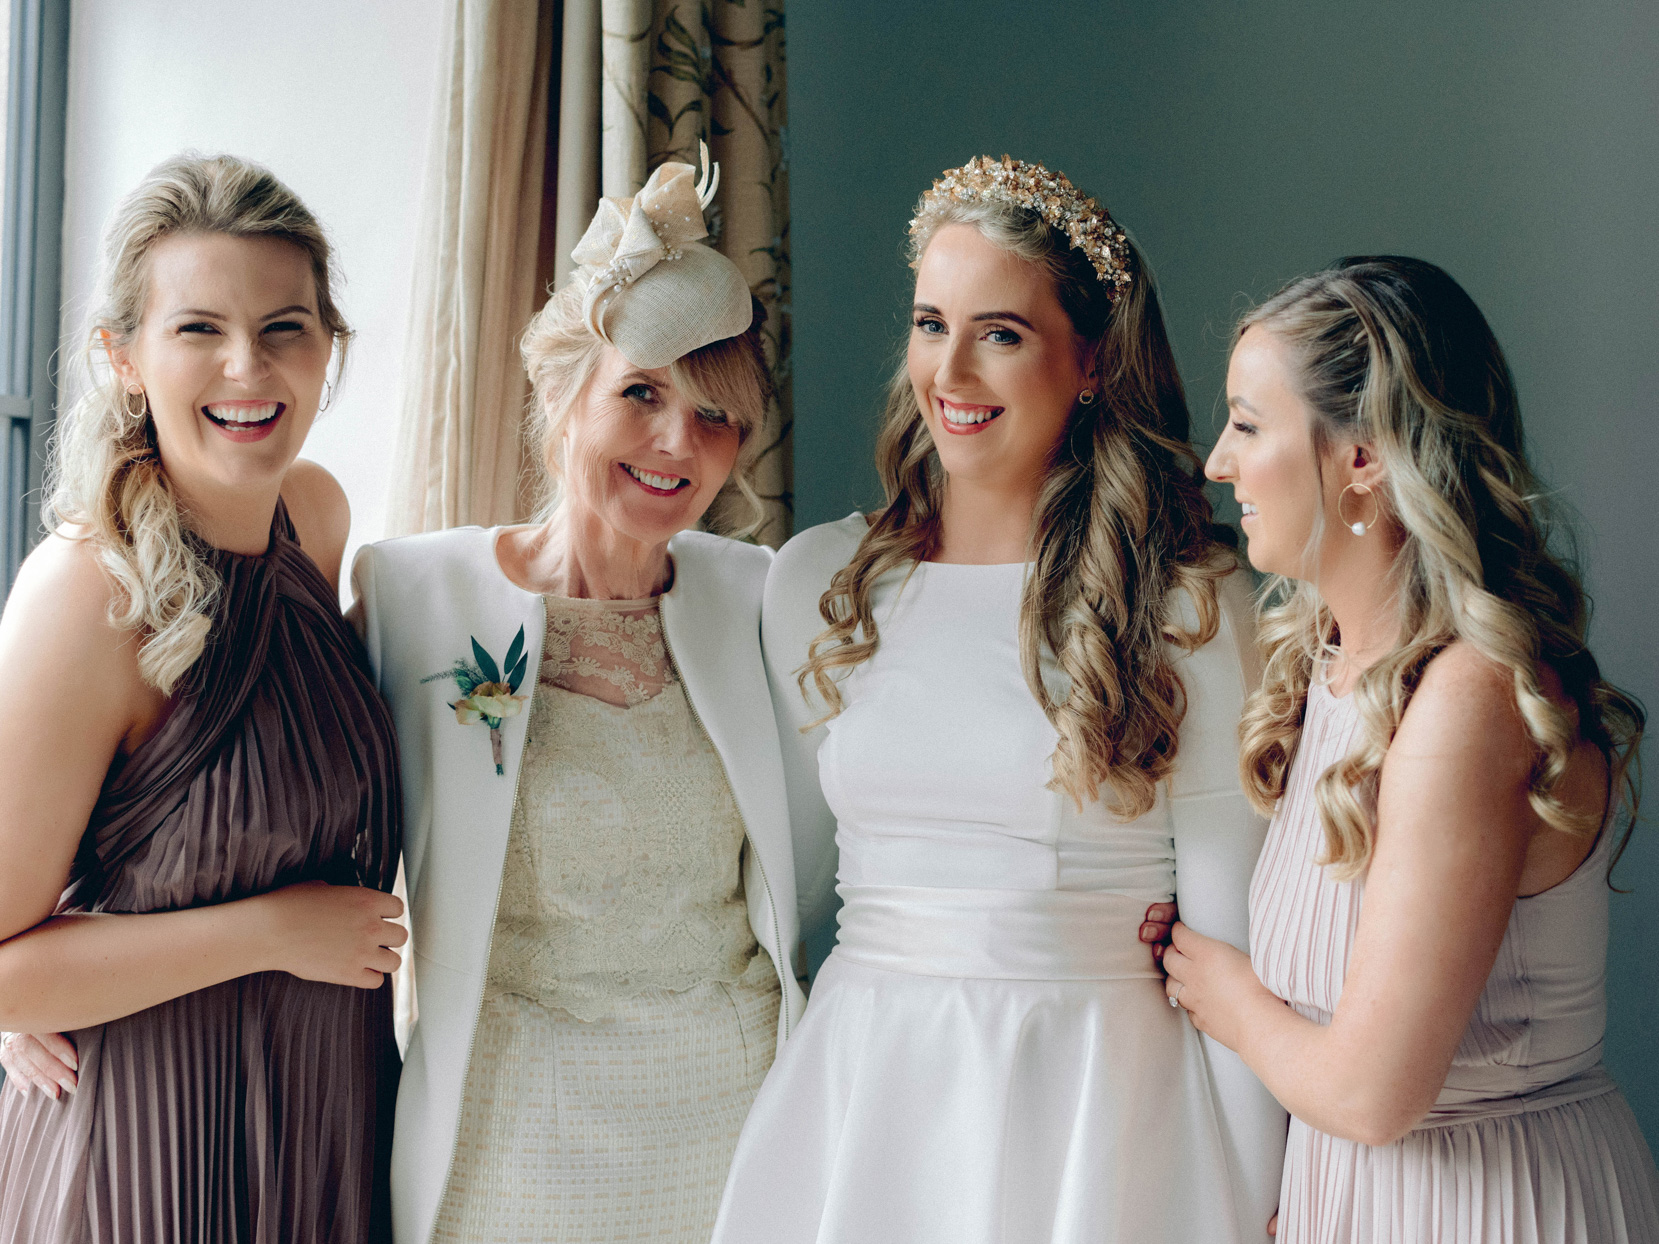 bride and wedding women smiling together